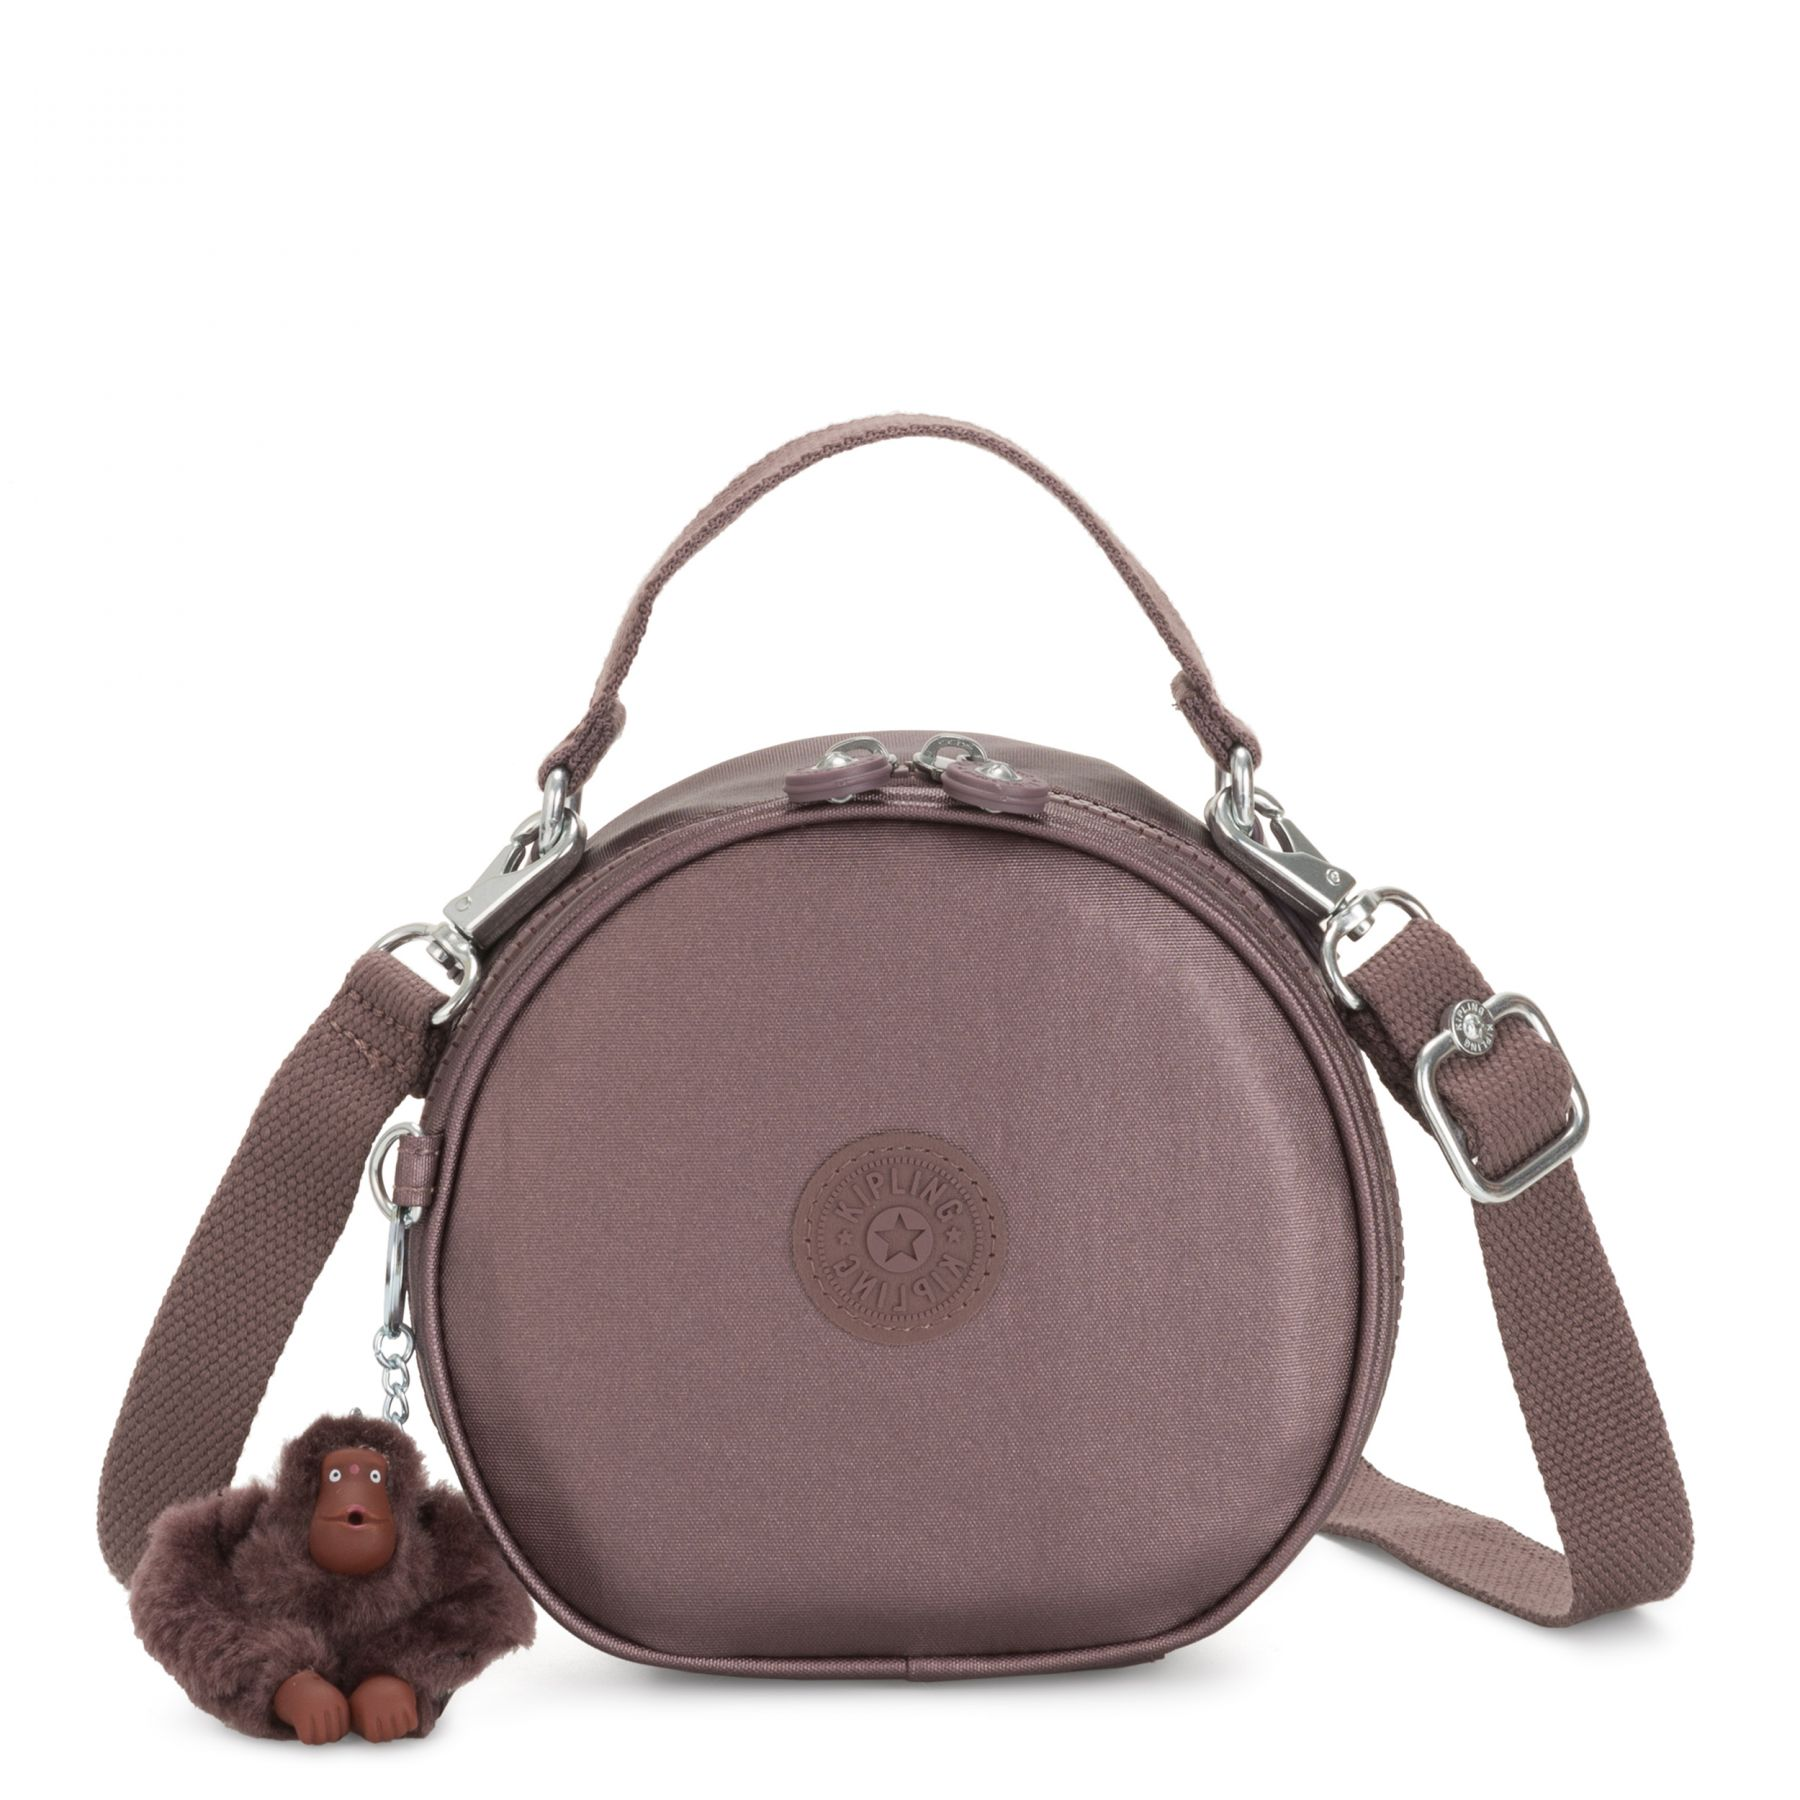 FUN OUTLET by Kipling - Front view